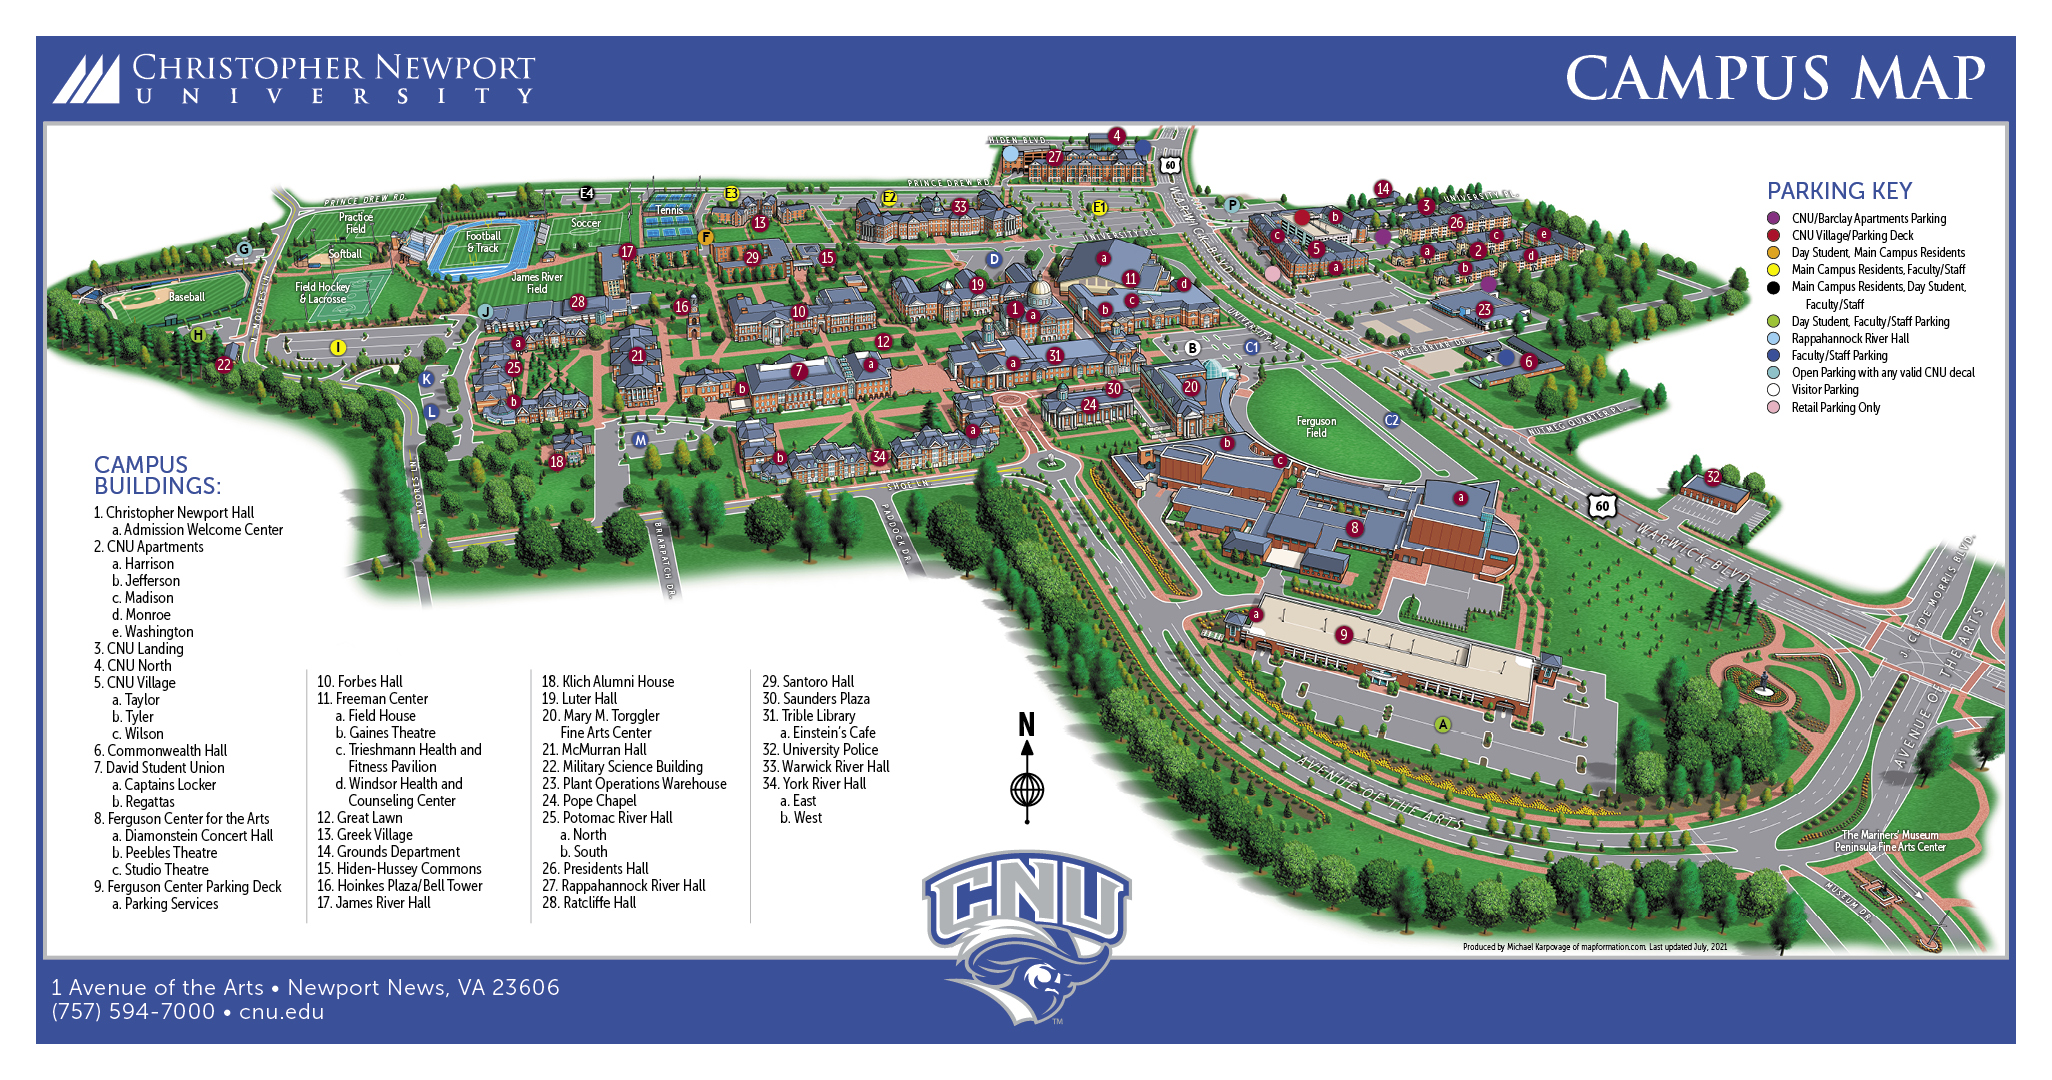 Old Dominion Campus Map.Campus Map Visit Christopher Newport University